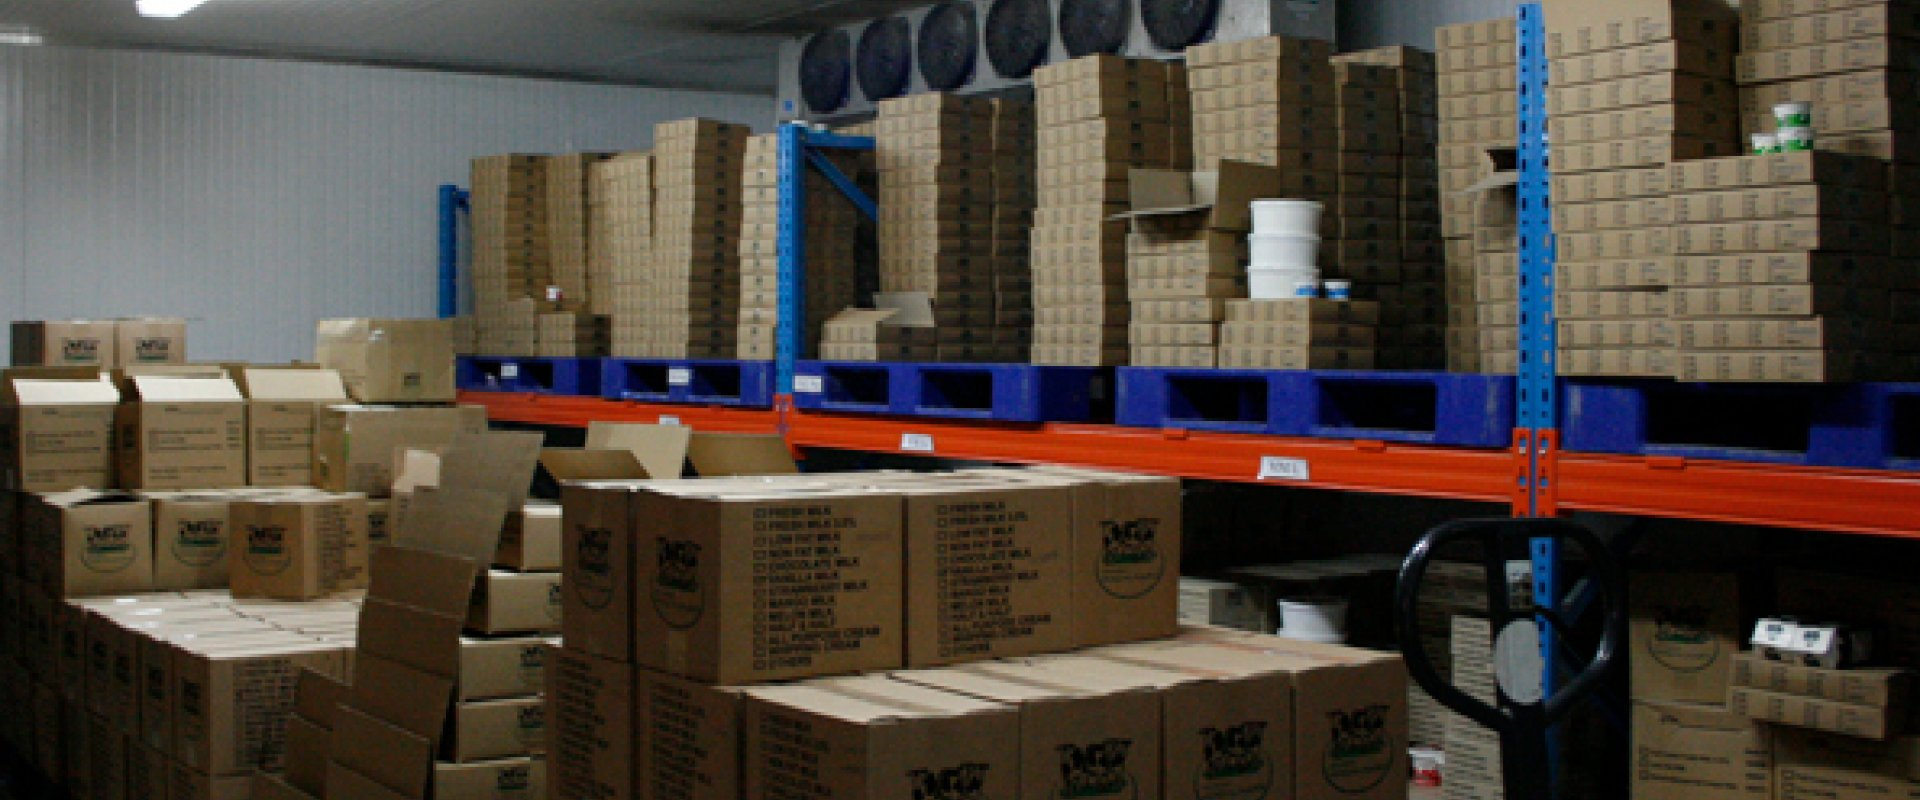 Sufficient cold storage and facilities and efficient delivery system